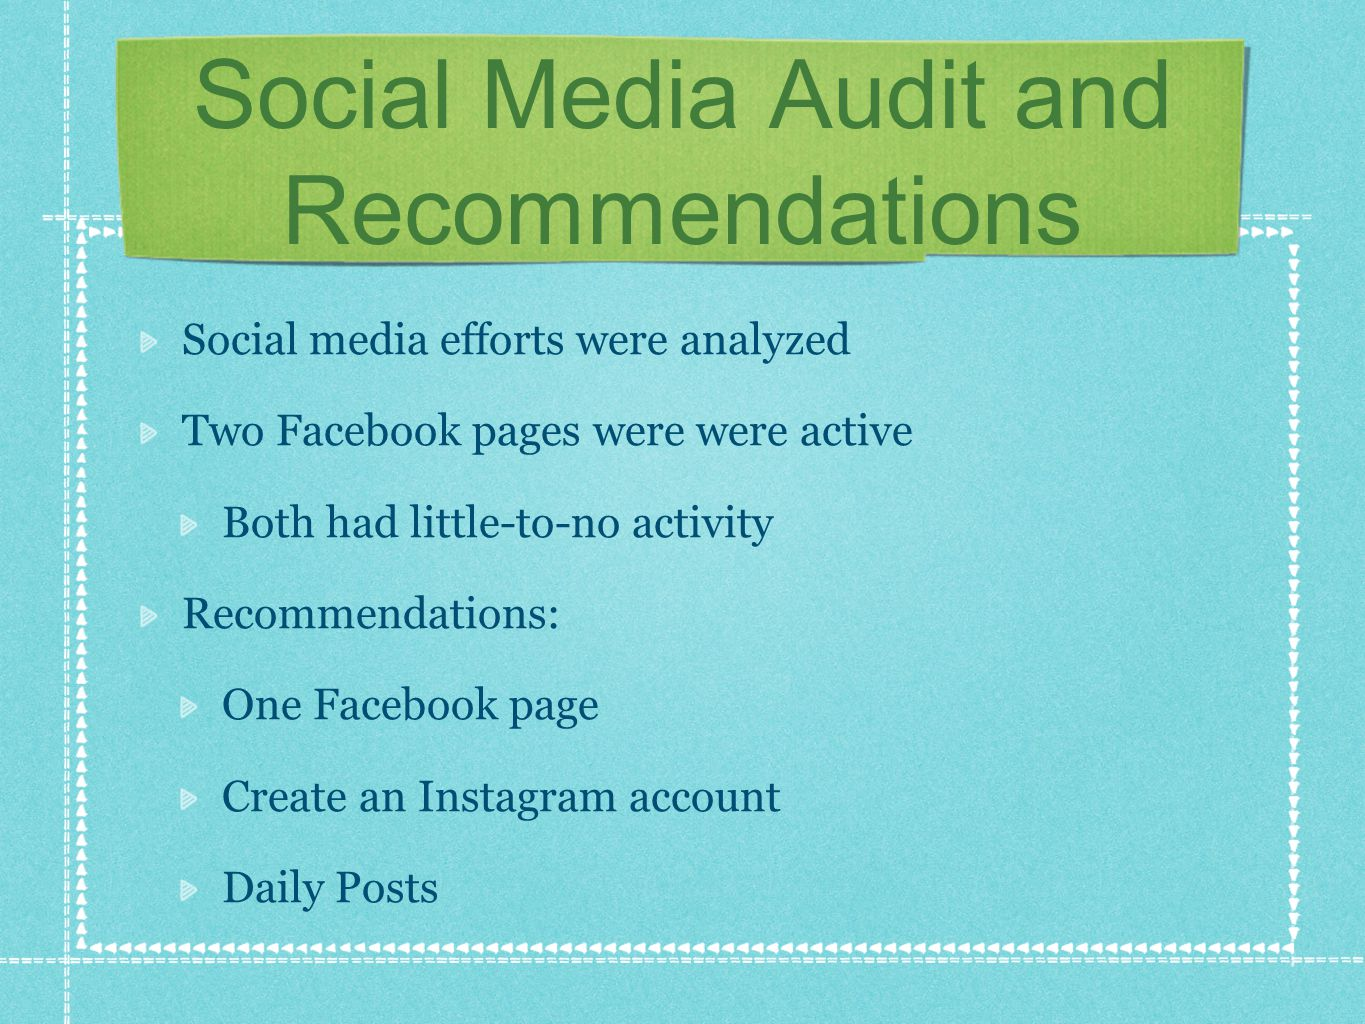 Social Media Audit and Recommendations Social media efforts were analyzed Two Facebook pages were were active Both had little-to-no activity Recommendations: One Facebook page Create an Instagram account Daily Posts